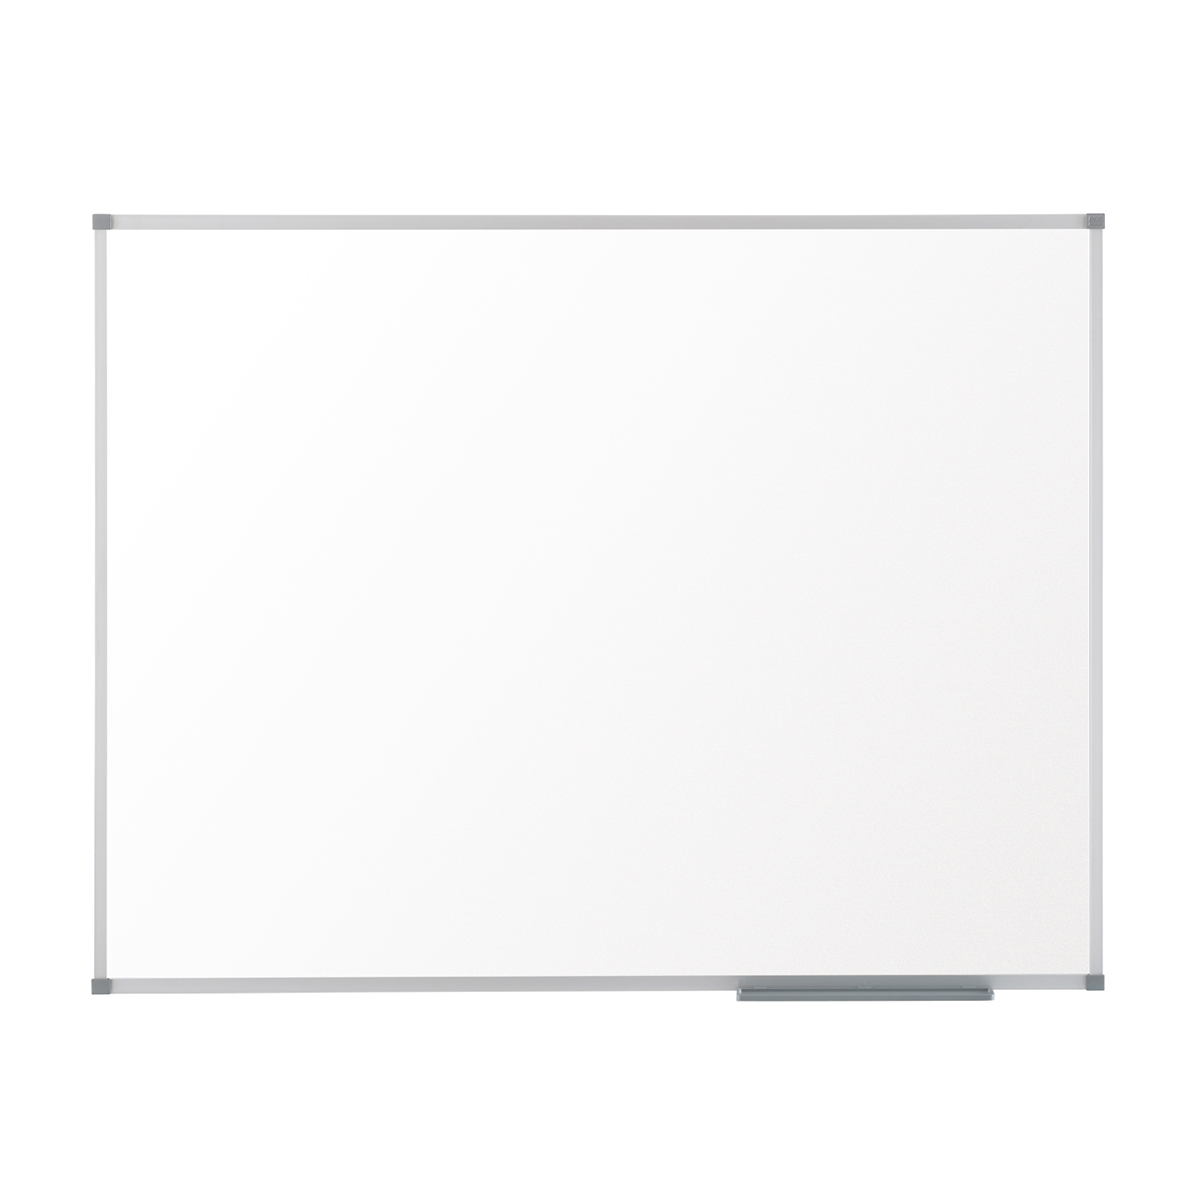 Nobo 1902644 Classic Steel Magnetic Whiteboard 1500 x 1000mm